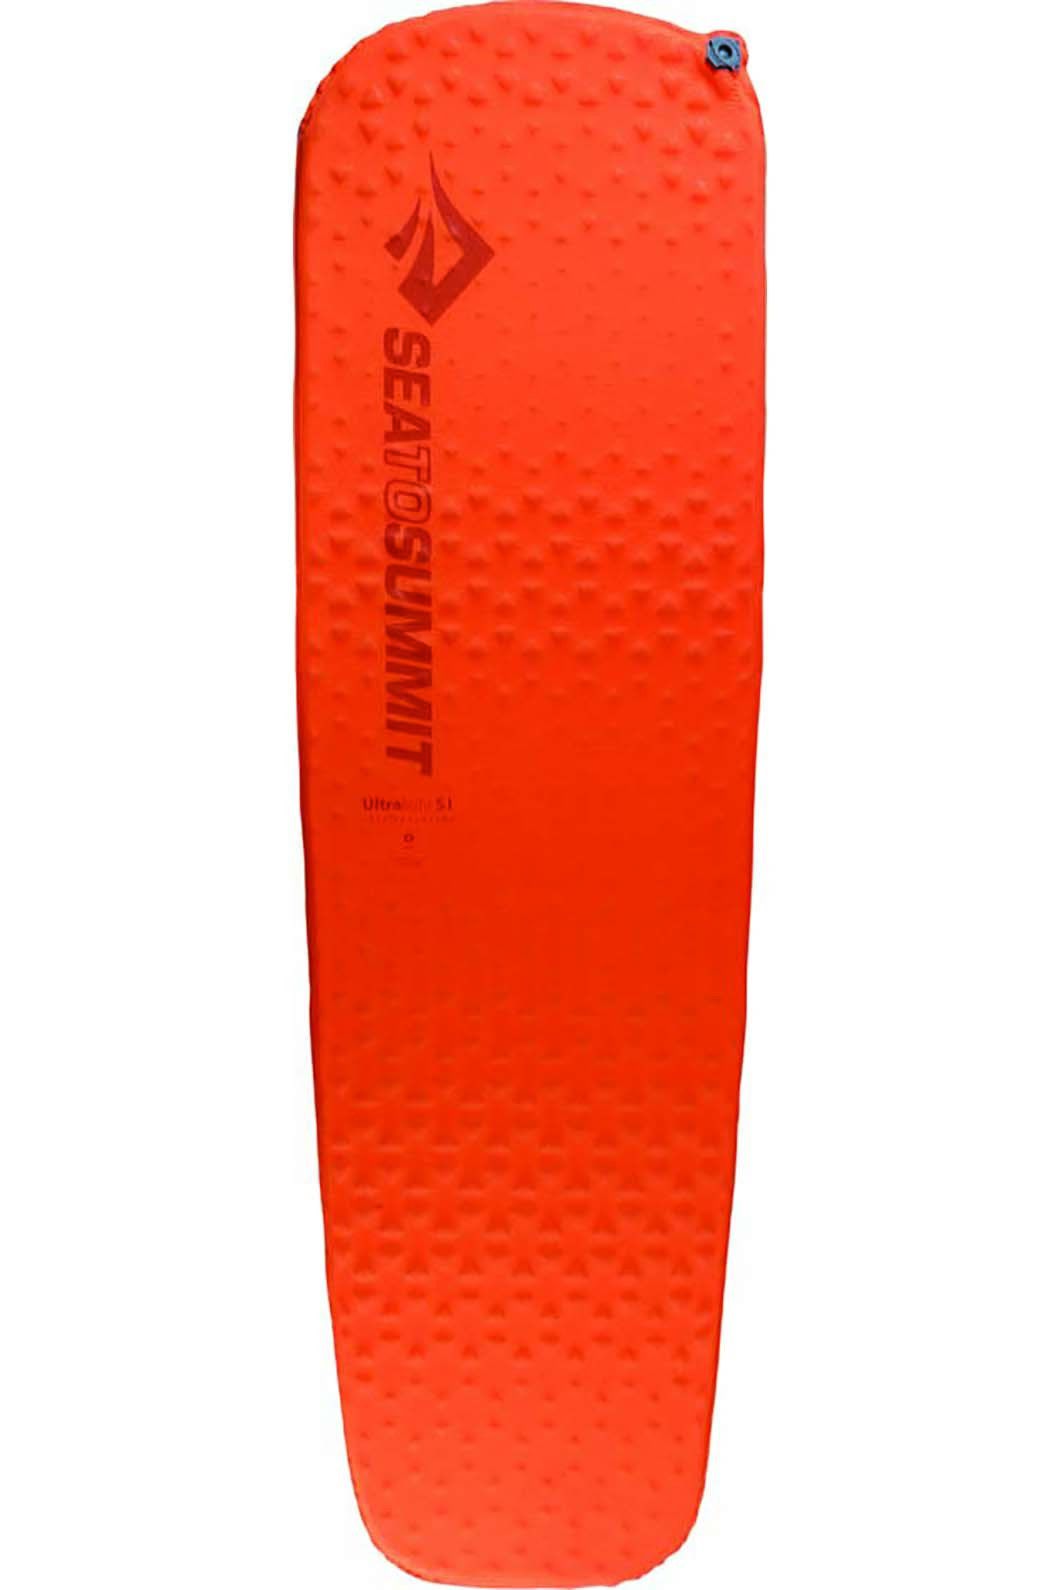 Sea to Summit Ultralight Regular Self Inflating Mat, None, hi-res